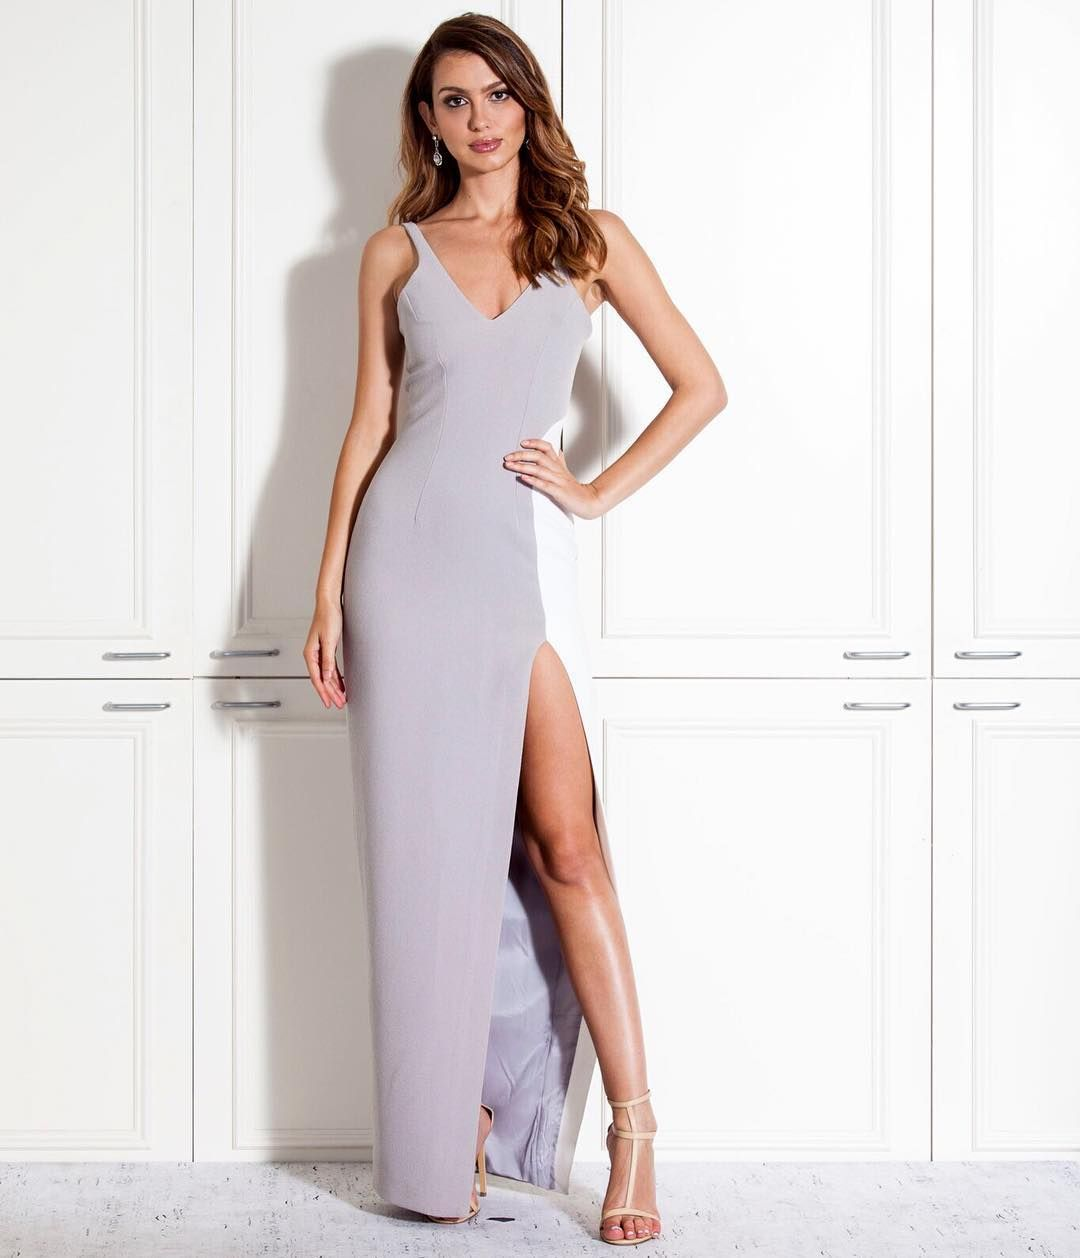 The Marble Tones Slice Dress by By Johnny #whiterunway #weddingfash #bridesmaids #eveningwear #formals